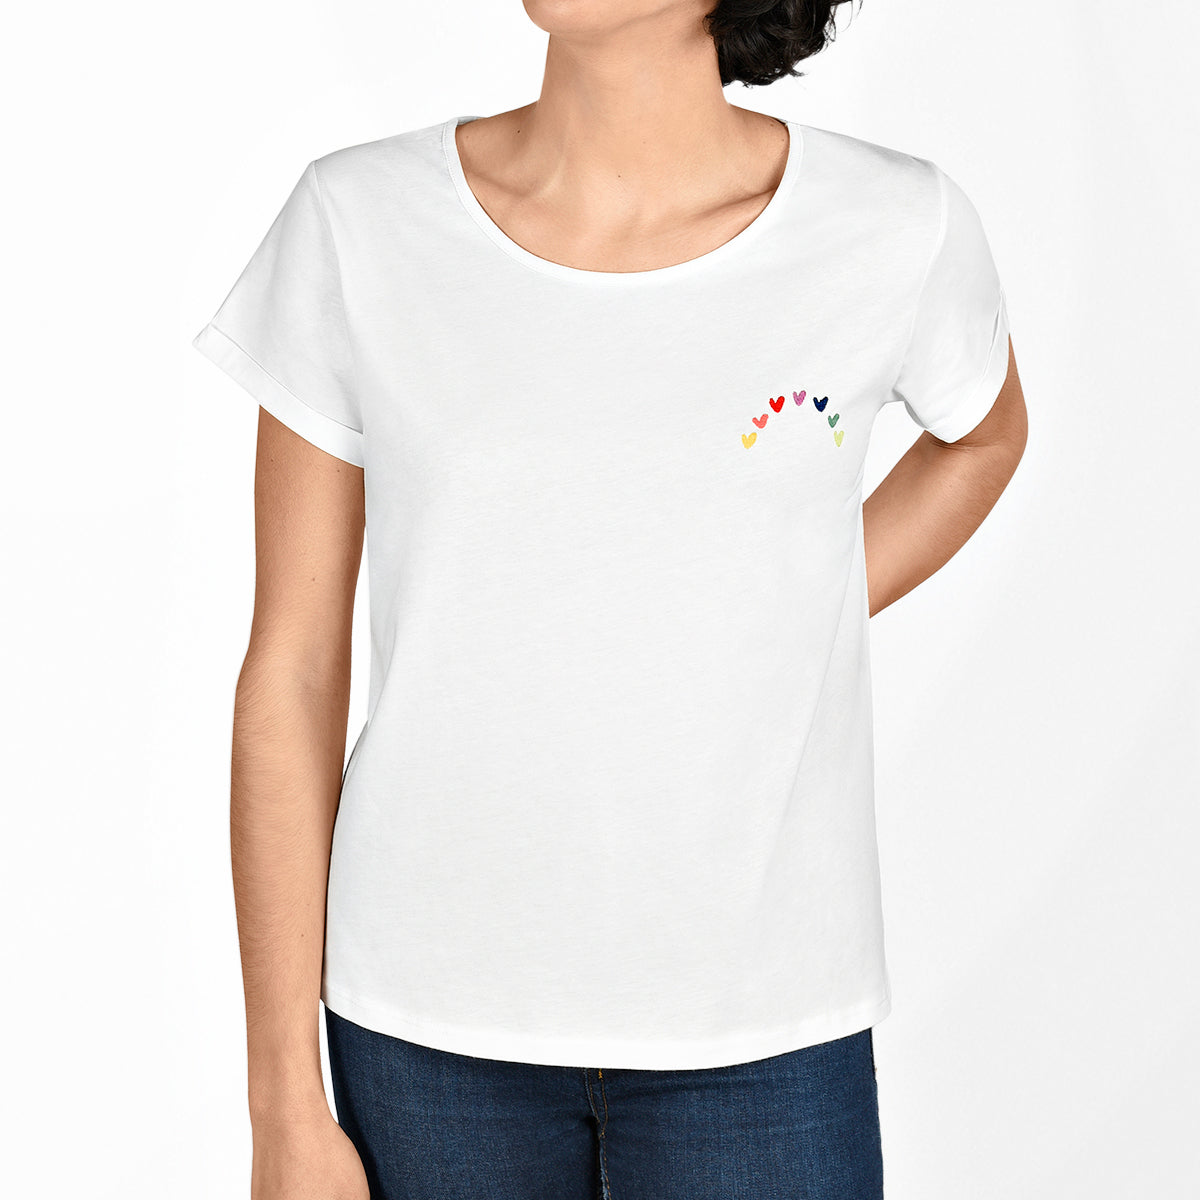 Model wearing Sophie Allport's Multicoloured Hearts Ladies T-Shirt